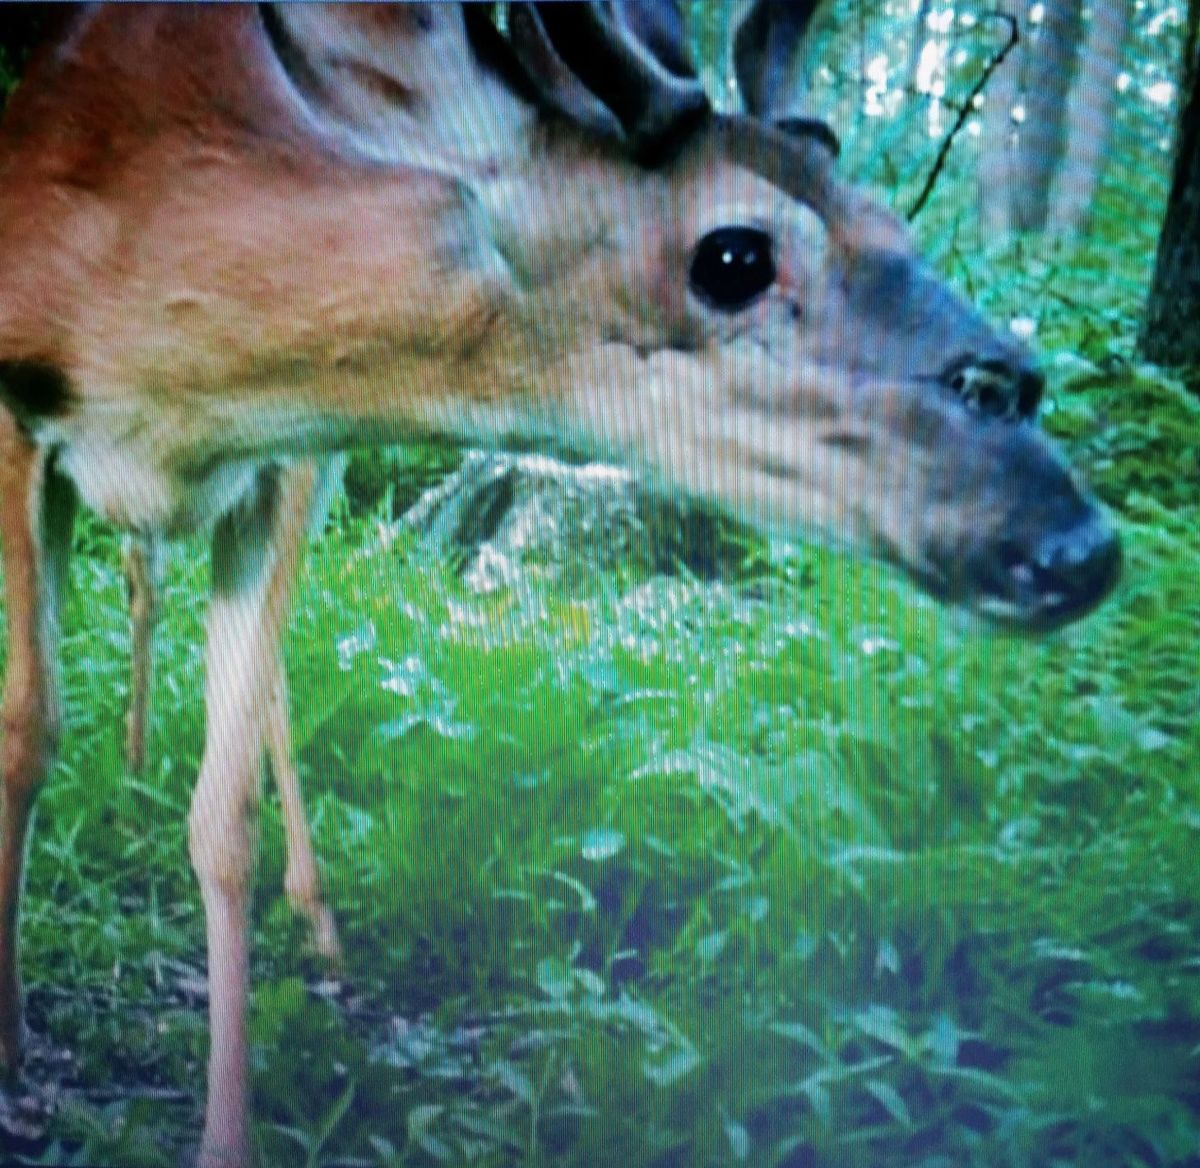 Watch:  Trail Camera Captures Deer With Odd Deformity on Head